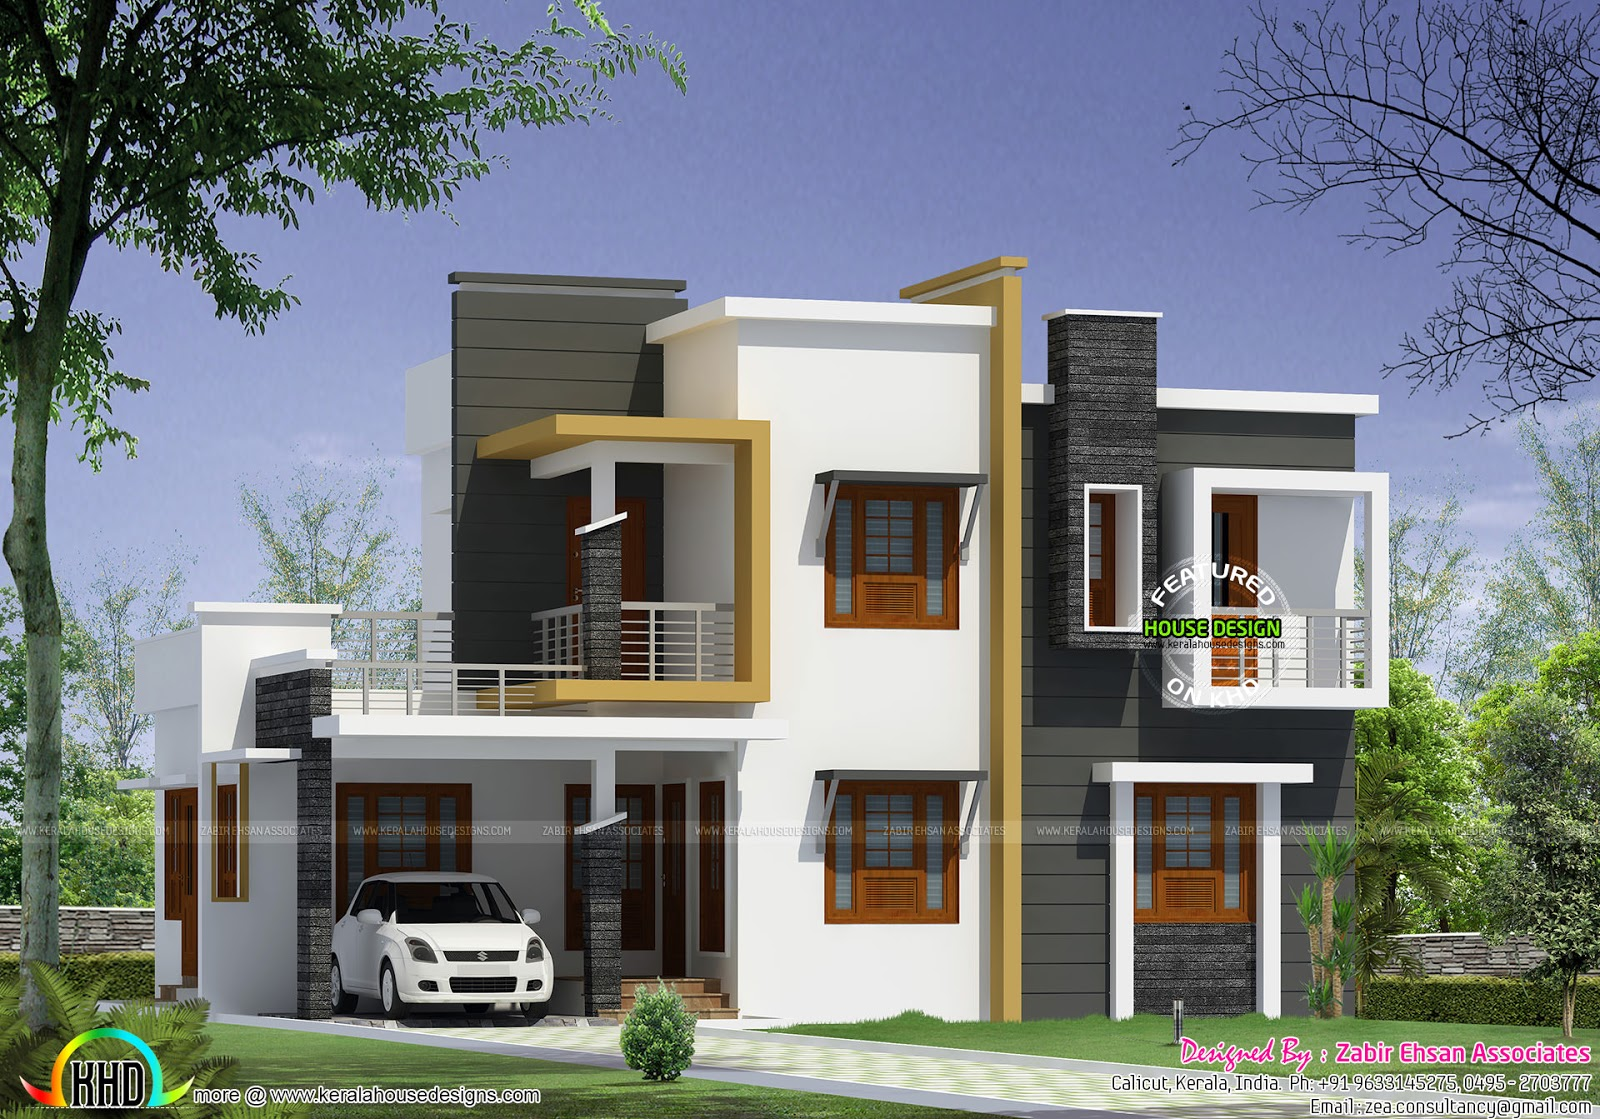 Box type modern house plan kerala home design and floor for Modern house plans 2016